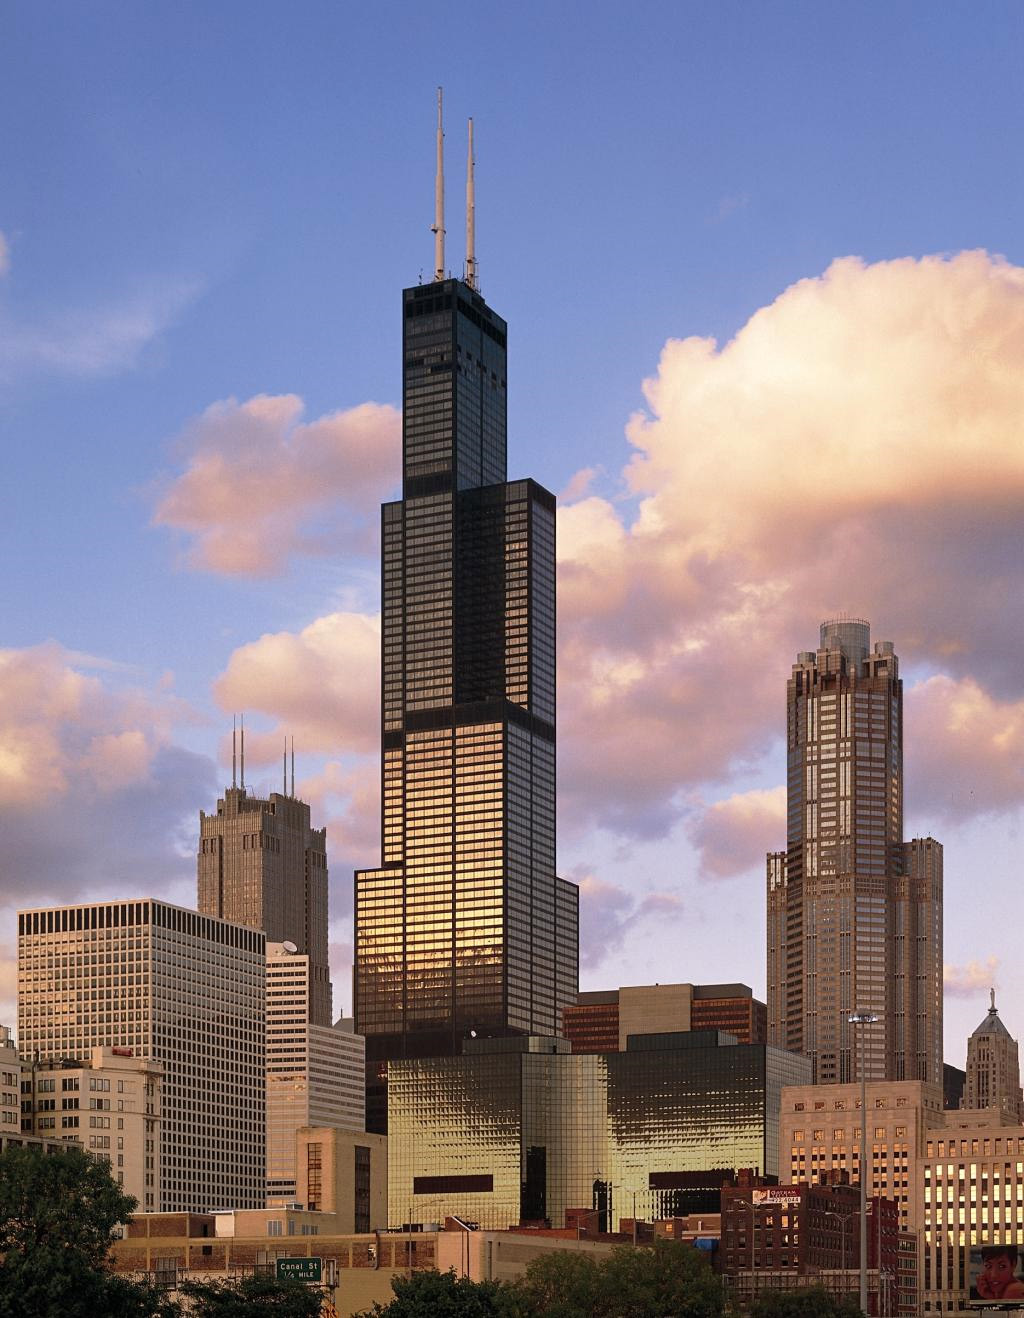 pictures 10 tallest buildings in the world amazing funny beautiful nature travel and much. Black Bedroom Furniture Sets. Home Design Ideas